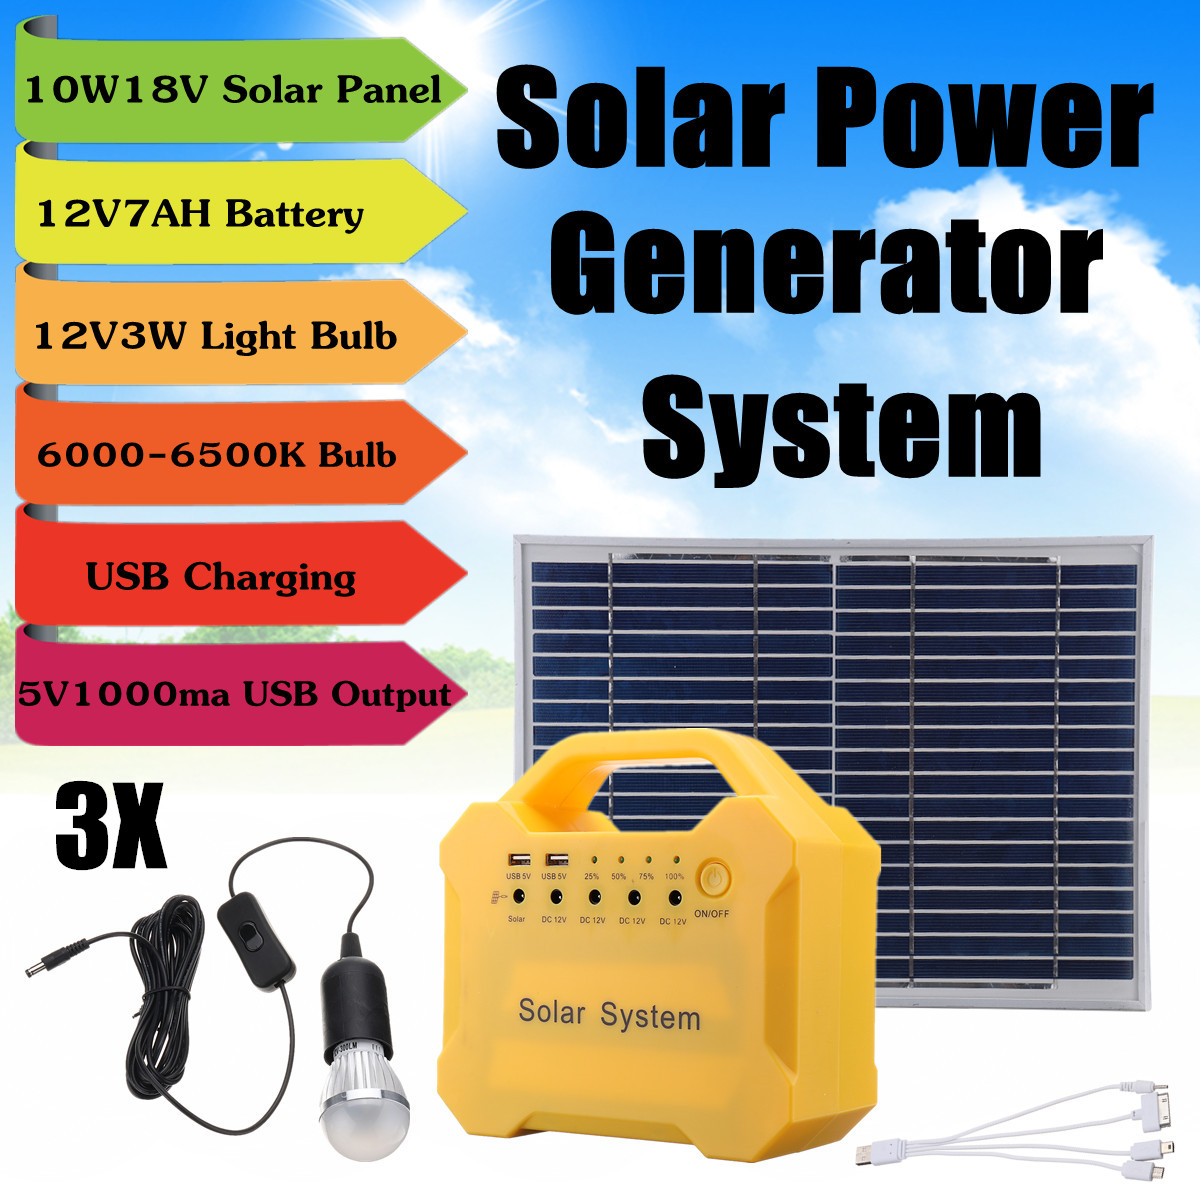 18V Solar Panel Power Storage Generator LED Light USB Charge System Home Outdoor Large Capacity Battery Energy Saving Camping hoox c02 magic stone series 6000mah polymer power bank dual usb quick charge energy saving green